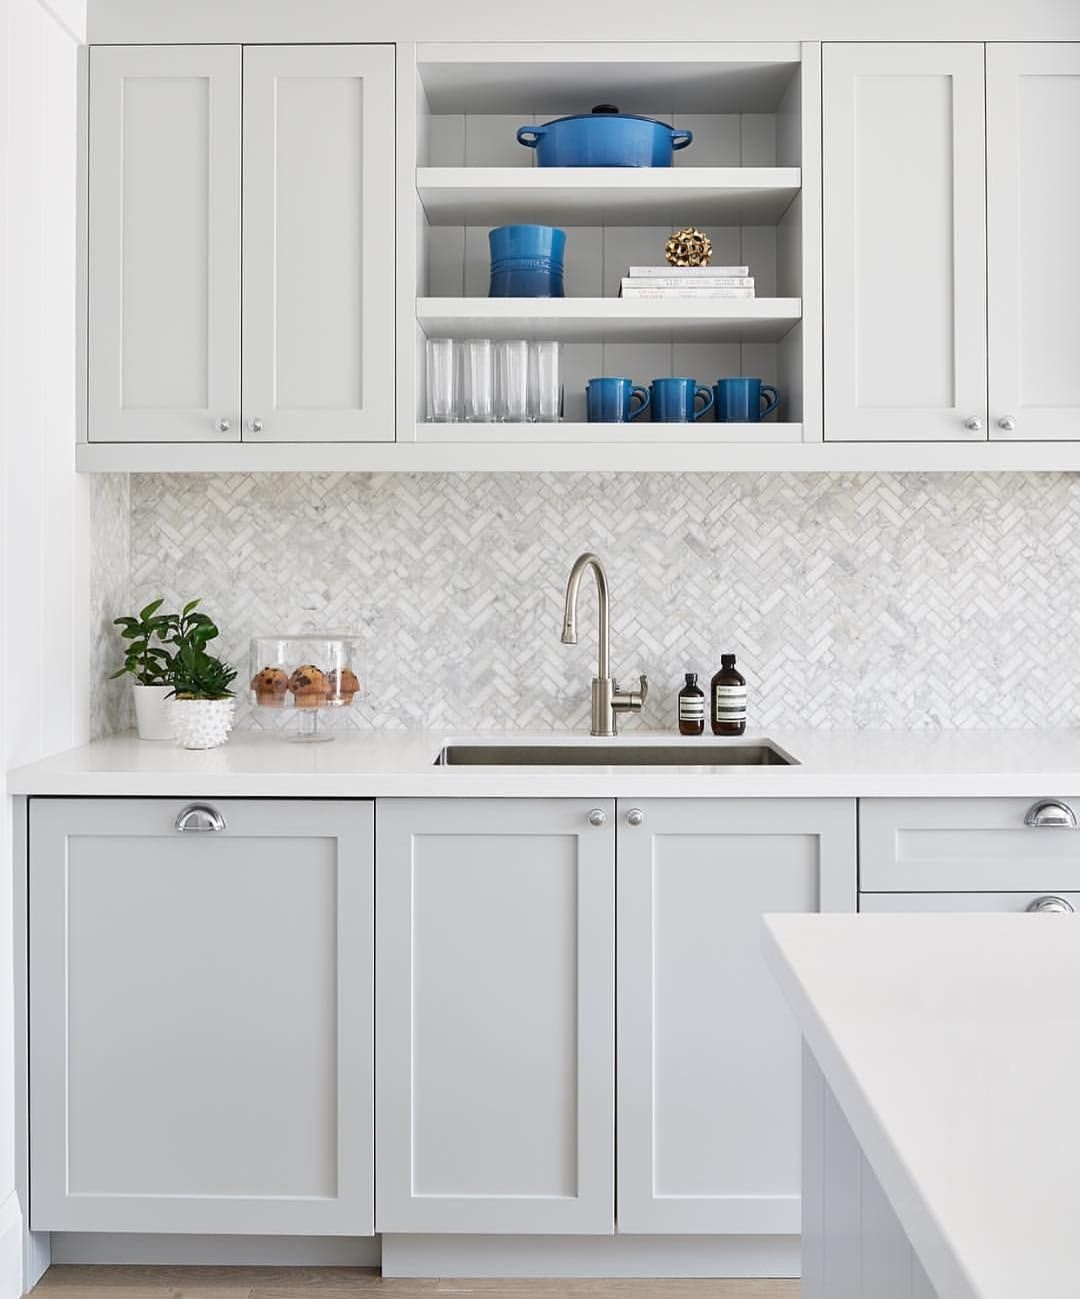 "Kitchens of Instagram on Instagram: ""Love this light gray cabinet with the marble backsplash! Stunning design from @rtgdesigns #kitchensofinsta"" #graycabinets"